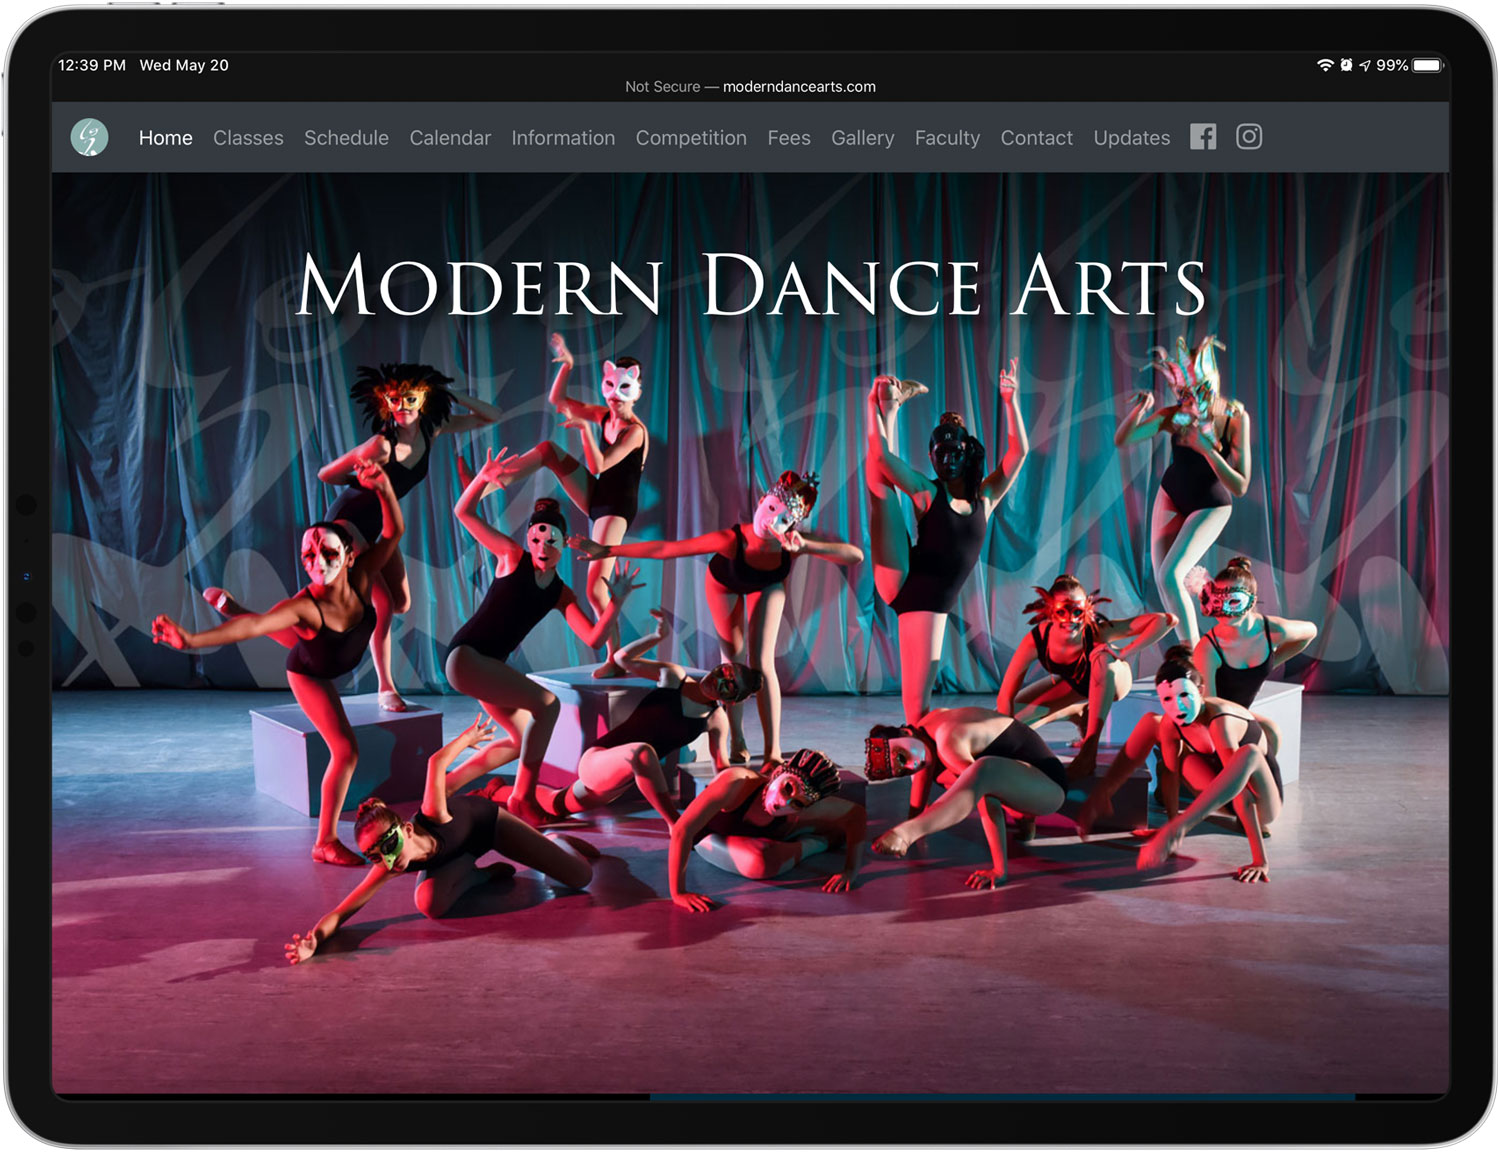 Modern Dance Arts website